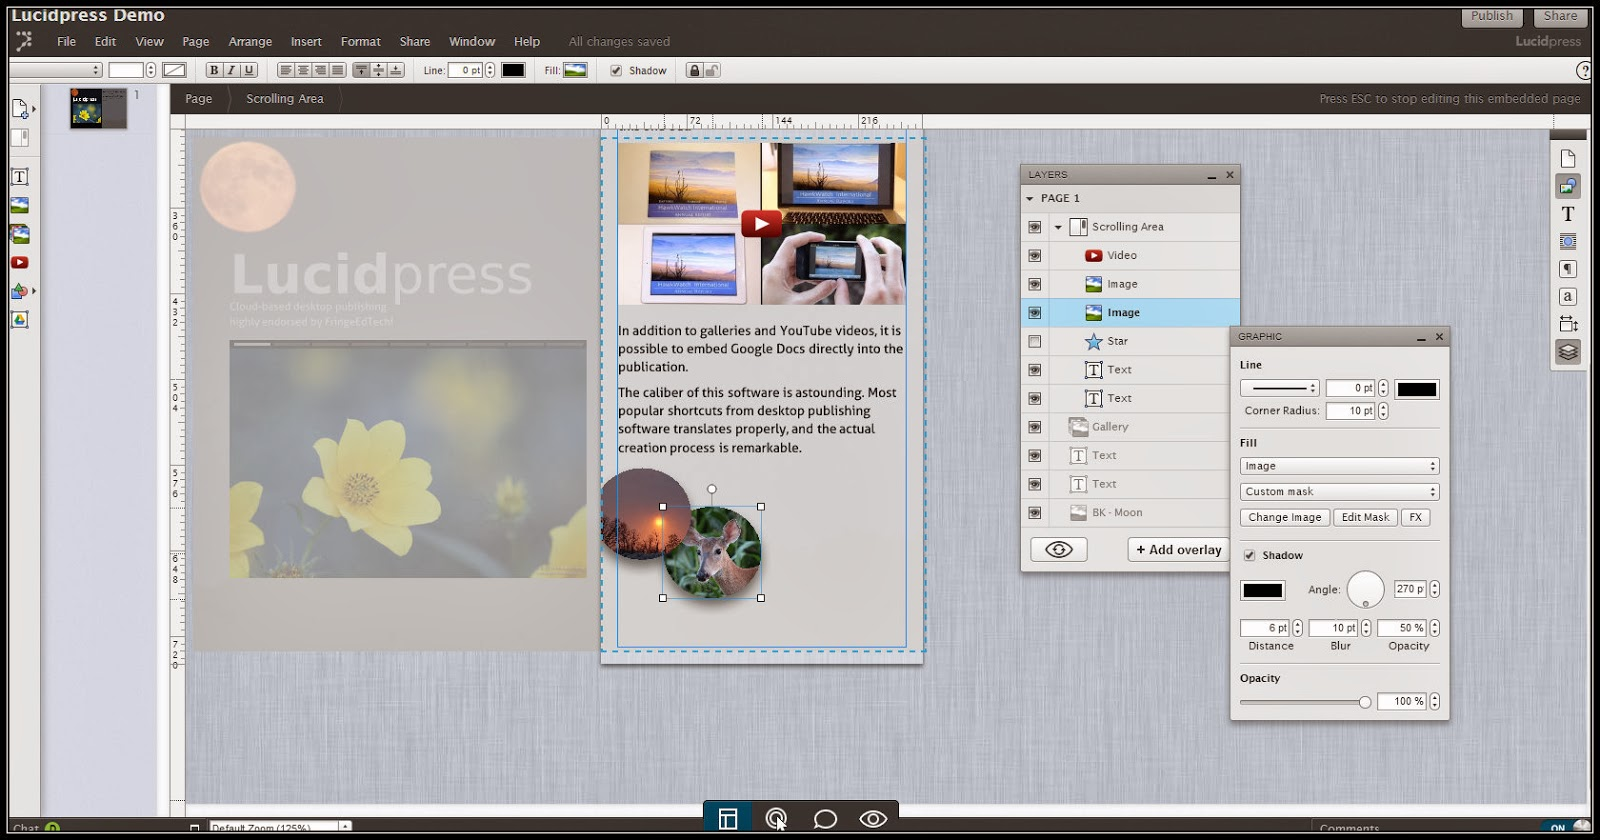 Snagit of Lucidpress in action.